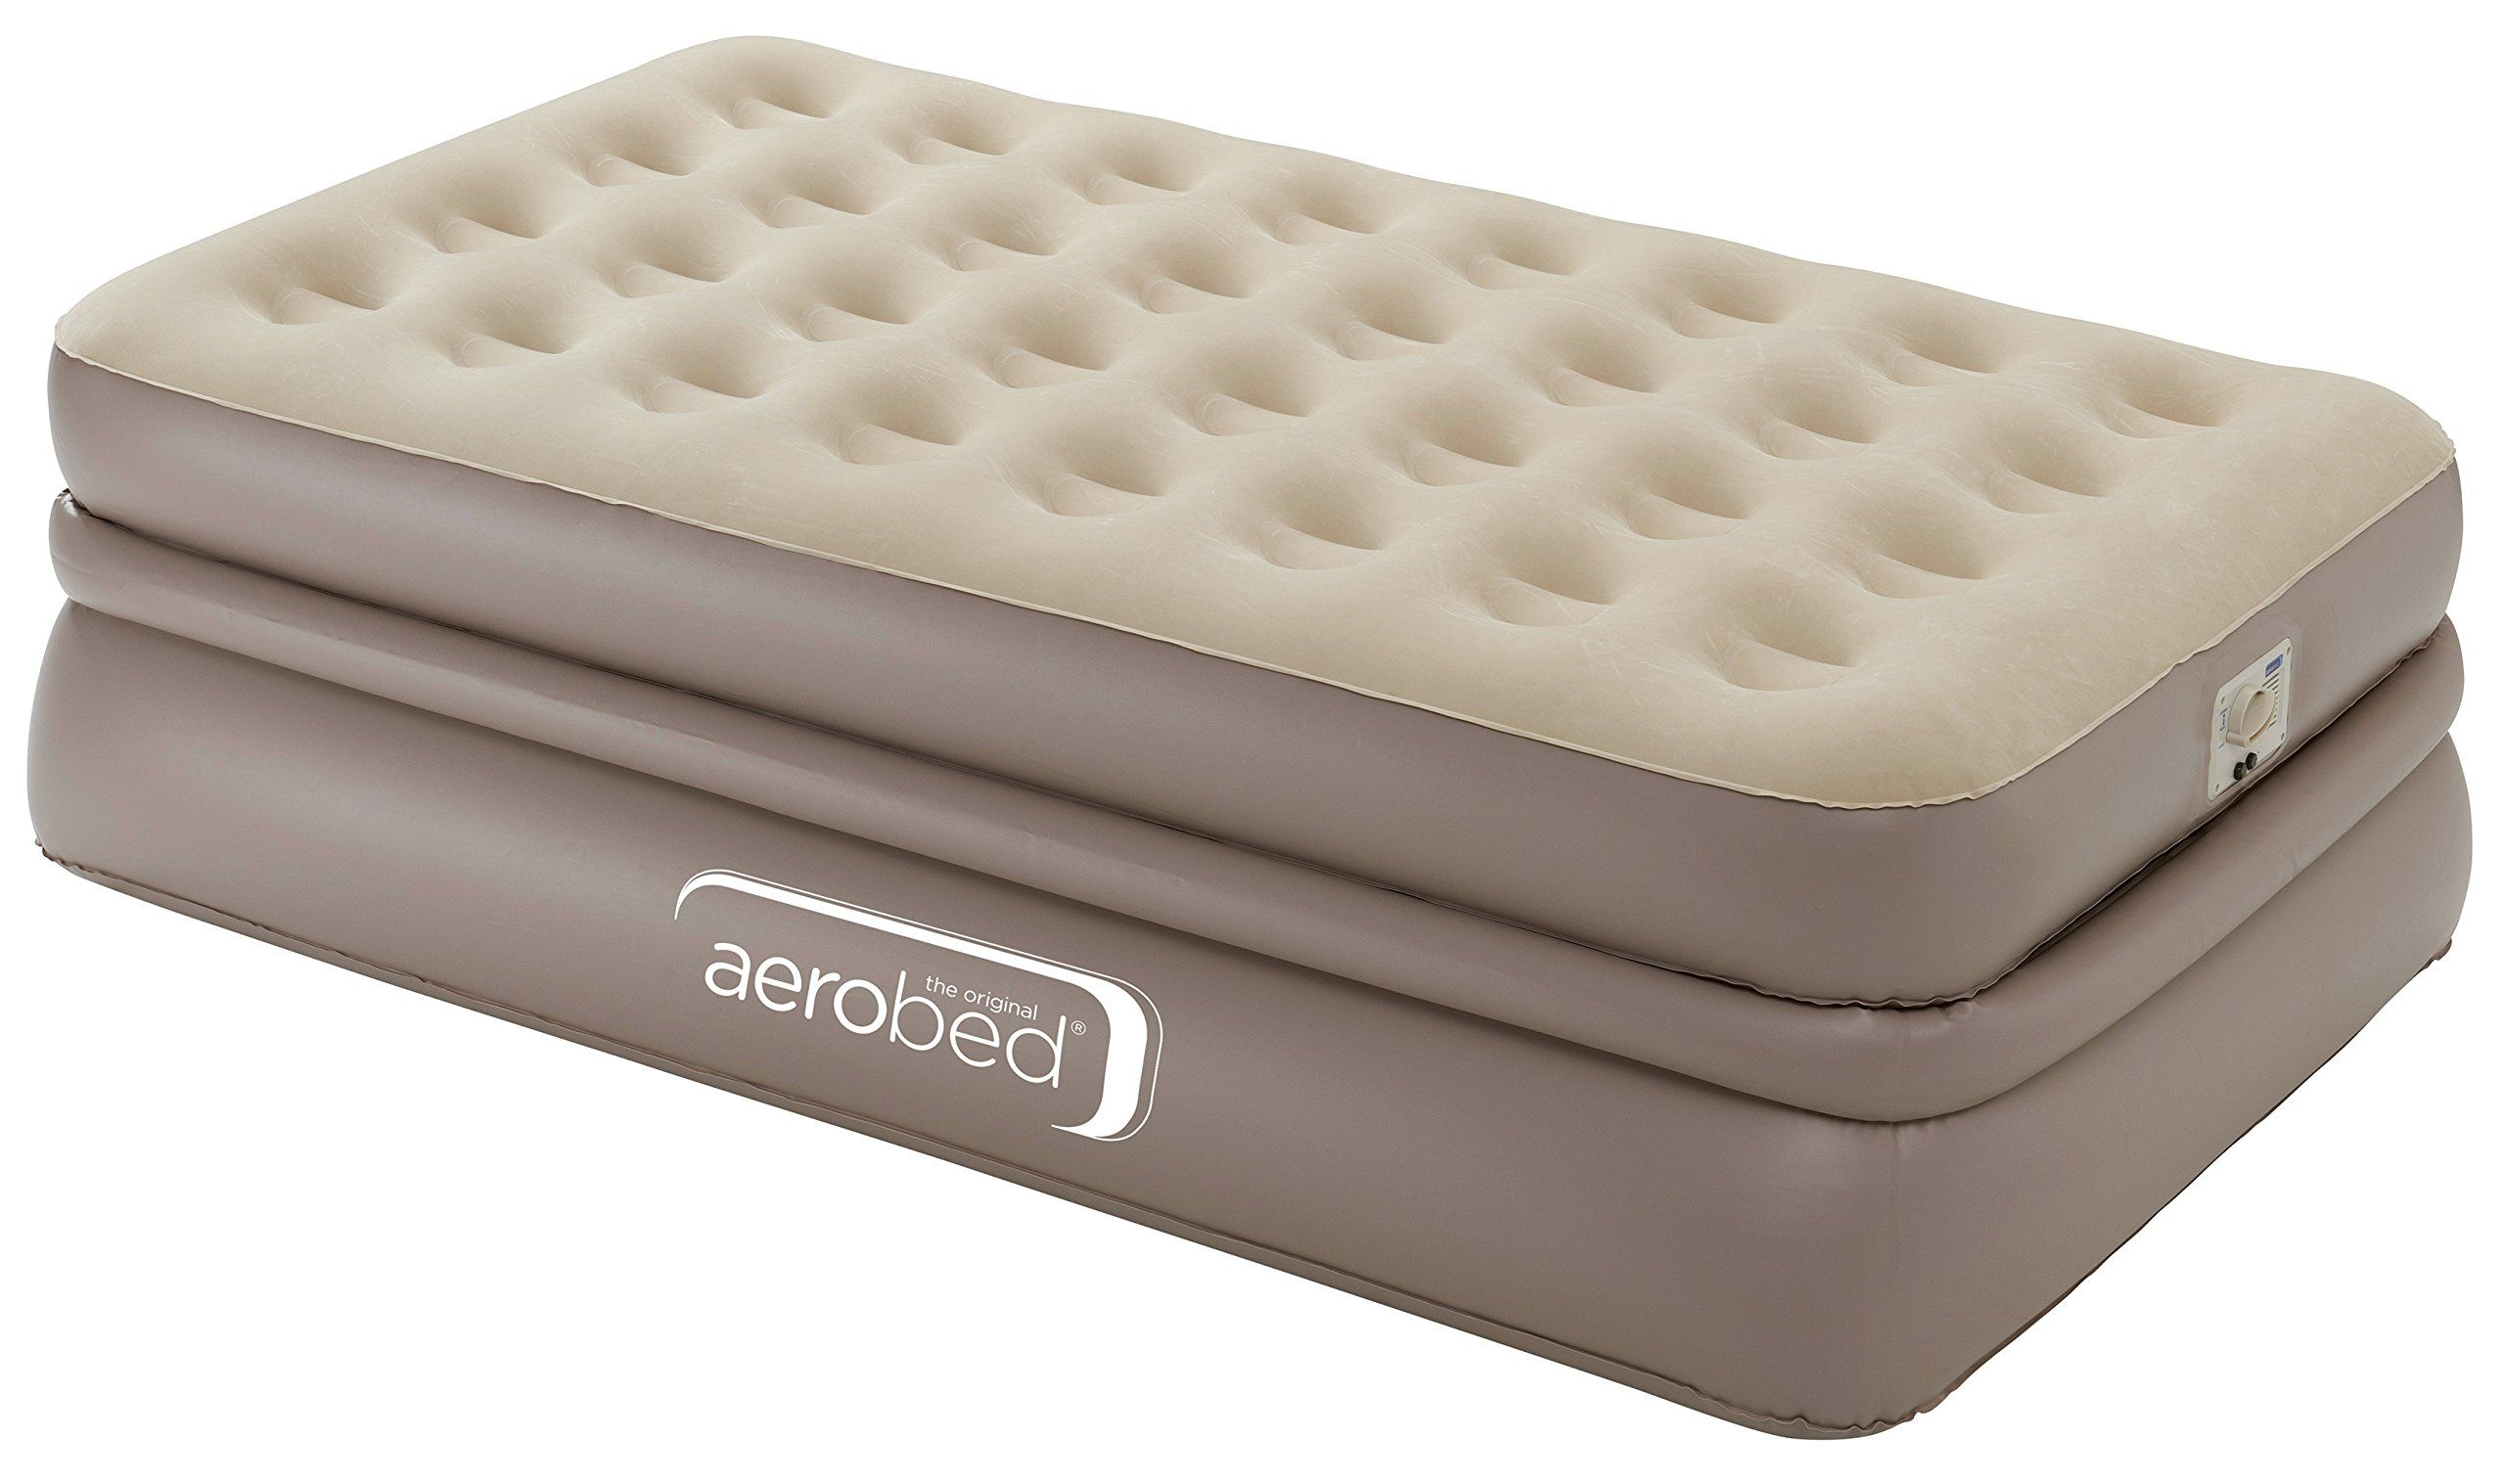 Aerobed Airbed Luxury Collection Raised, Indoor Air Bed